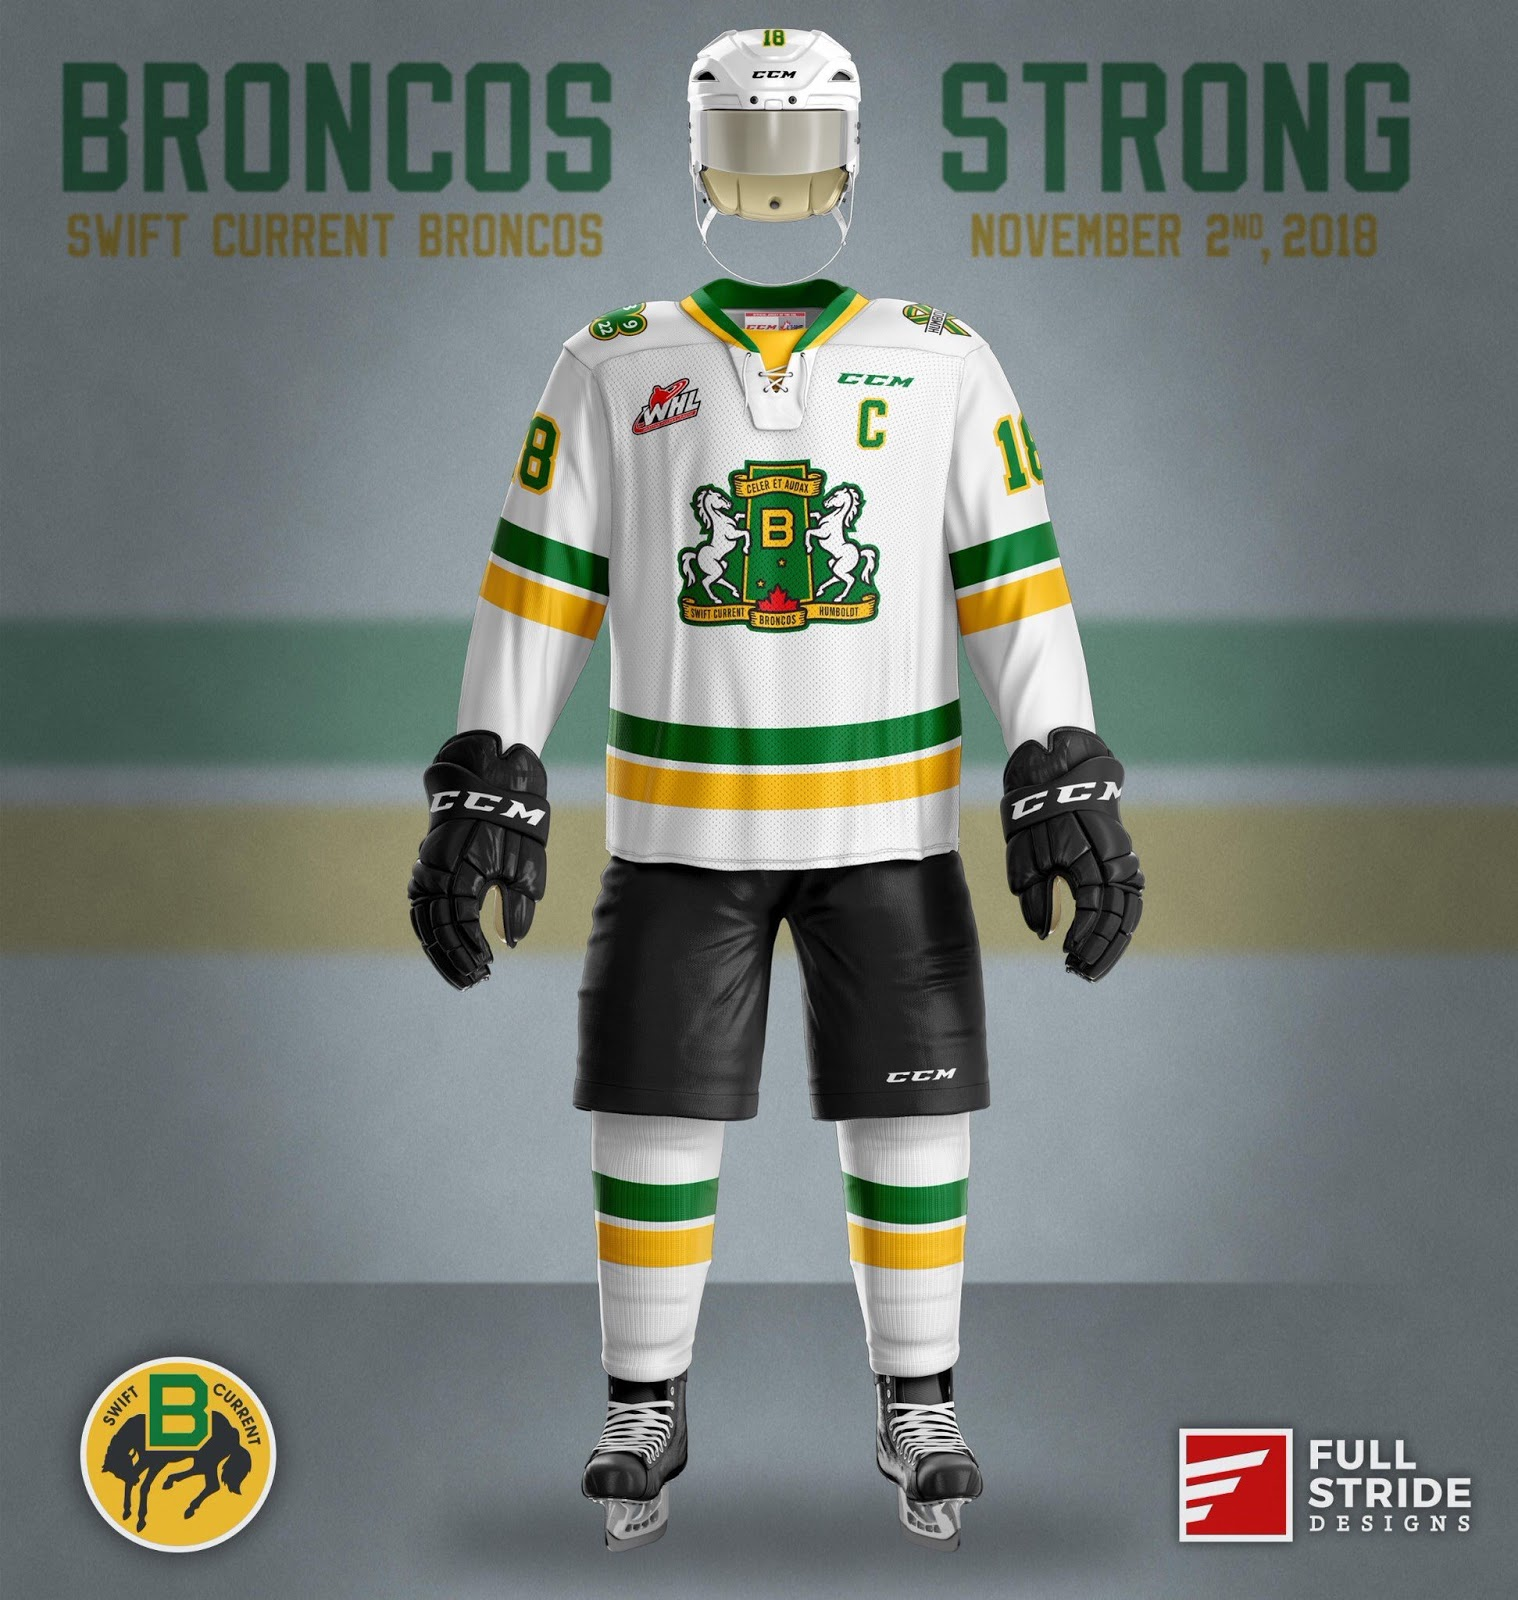 Broncos Strong  Swift Current to Pay Tribute to Humboldt on November ... 707e8beef